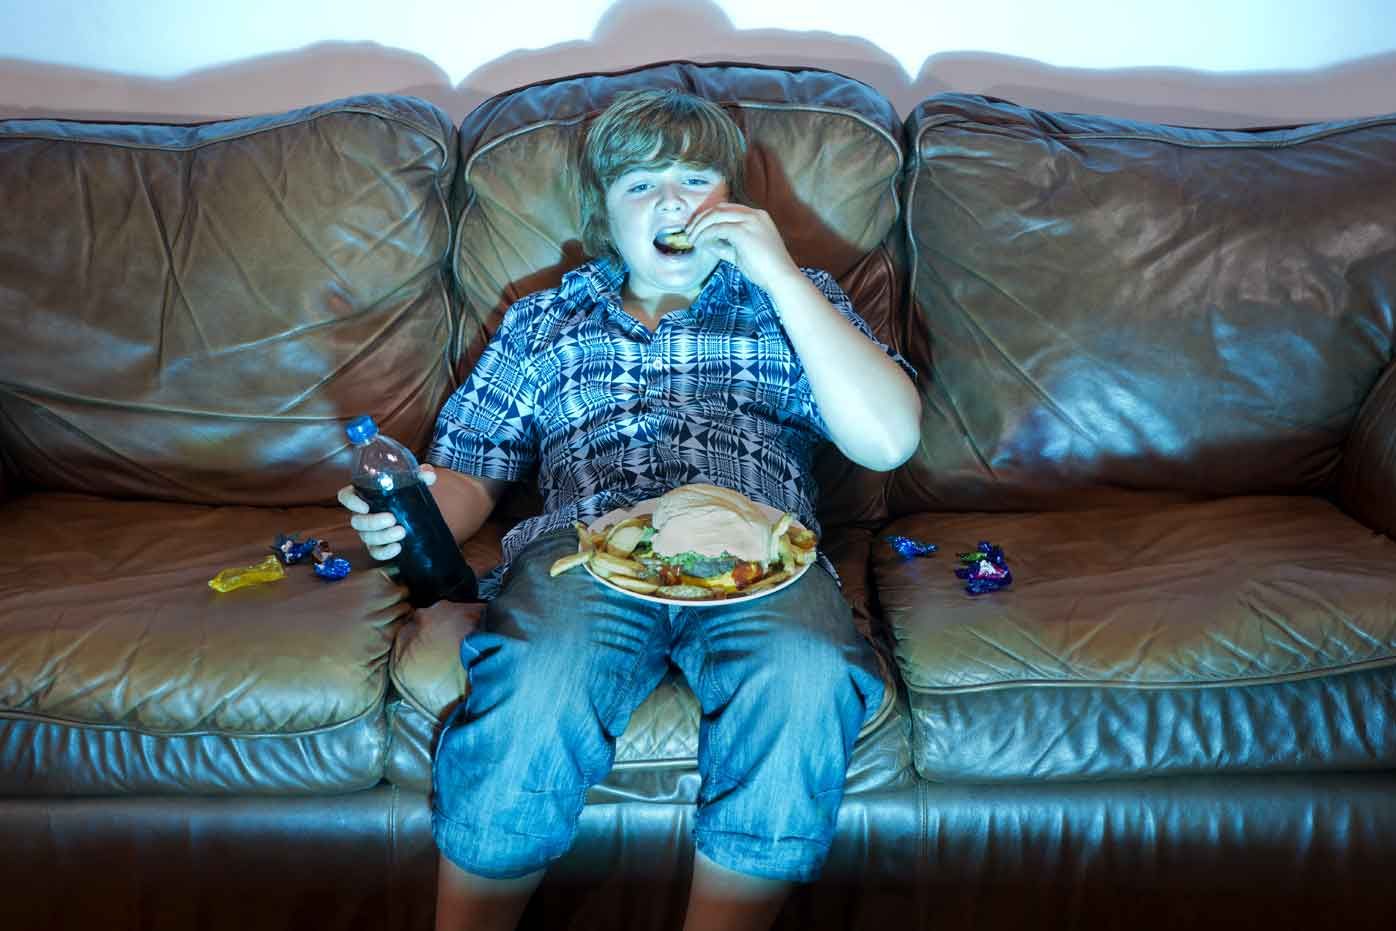 Eating meals while watching TV